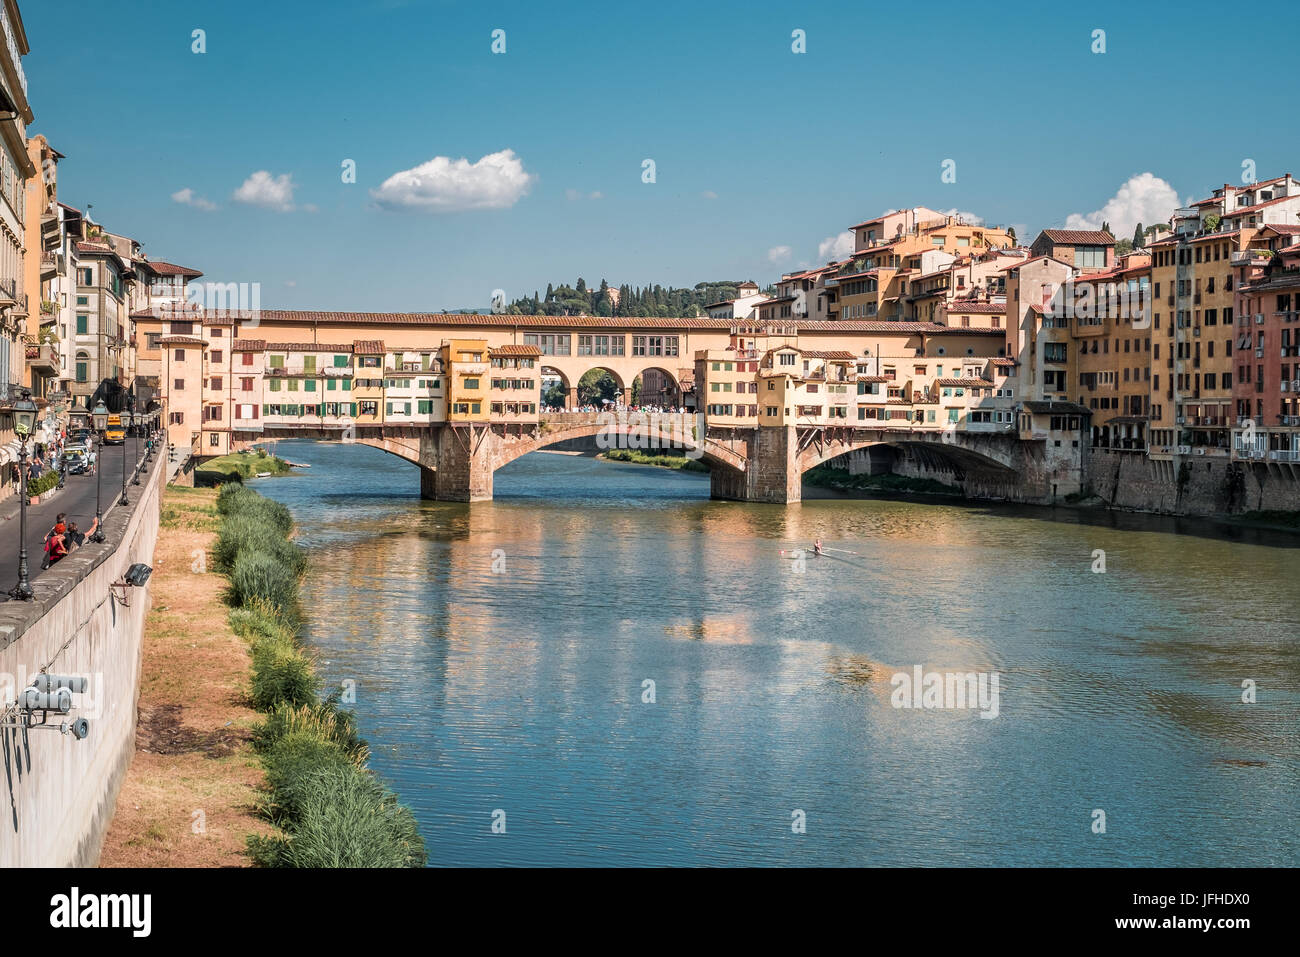 The east side of Ponte Vecchio (old bridge) in Florece Italy - Stock Image